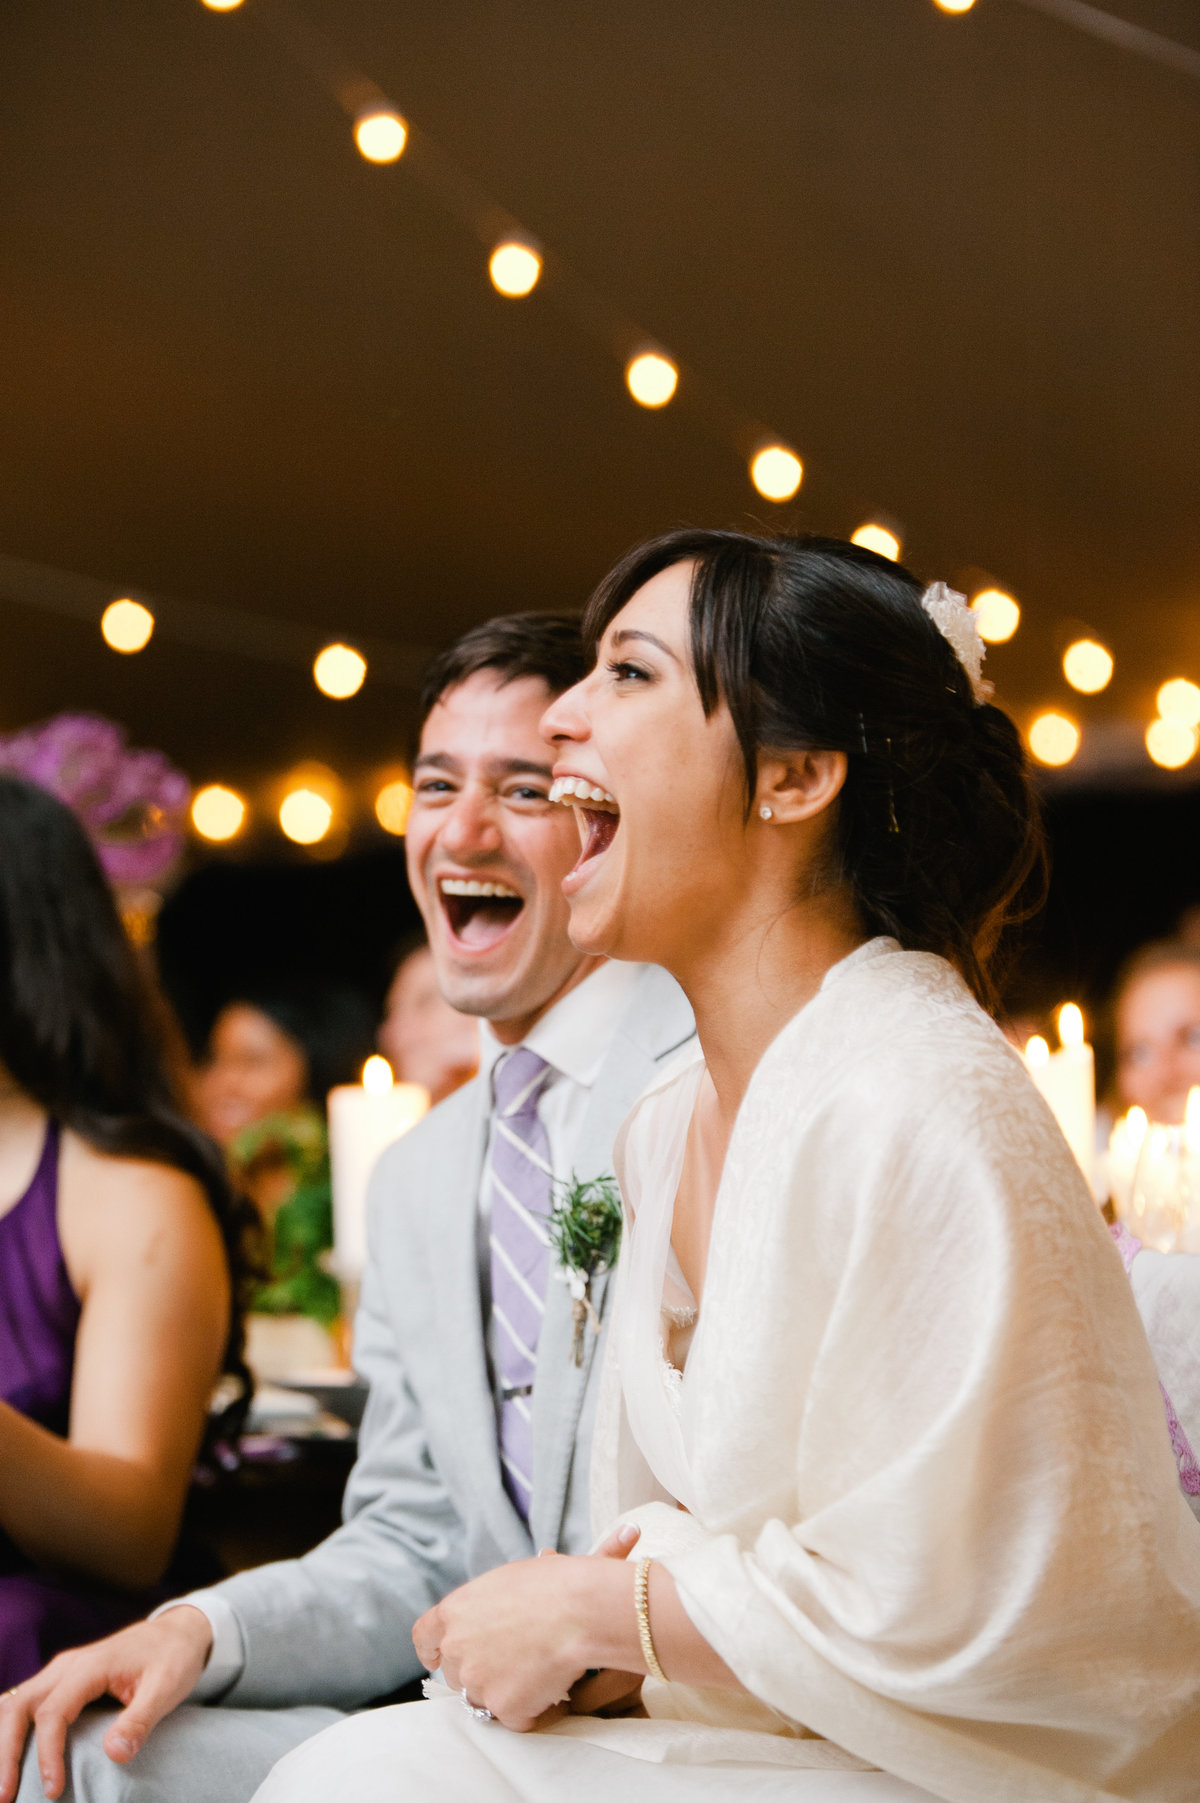 Bride and groom react to toast